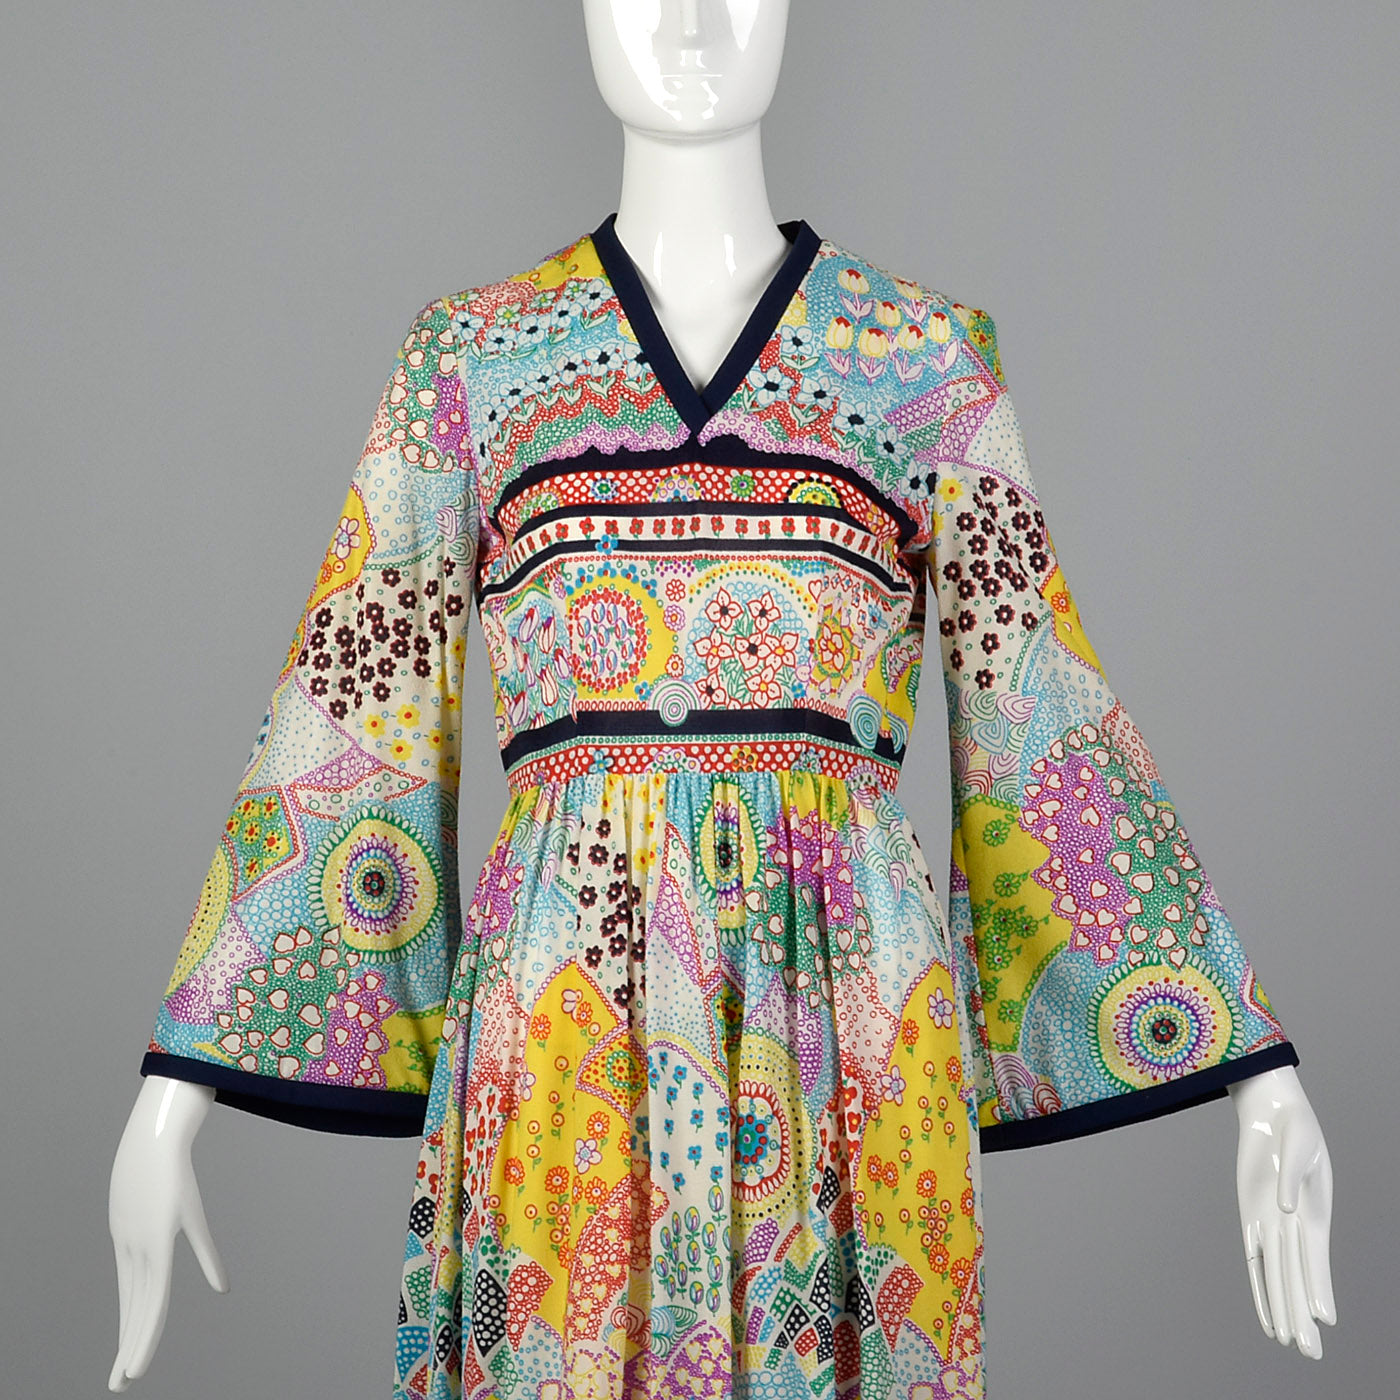 1970s Psychedelic Print Maxi Dress with Bell Sleeves